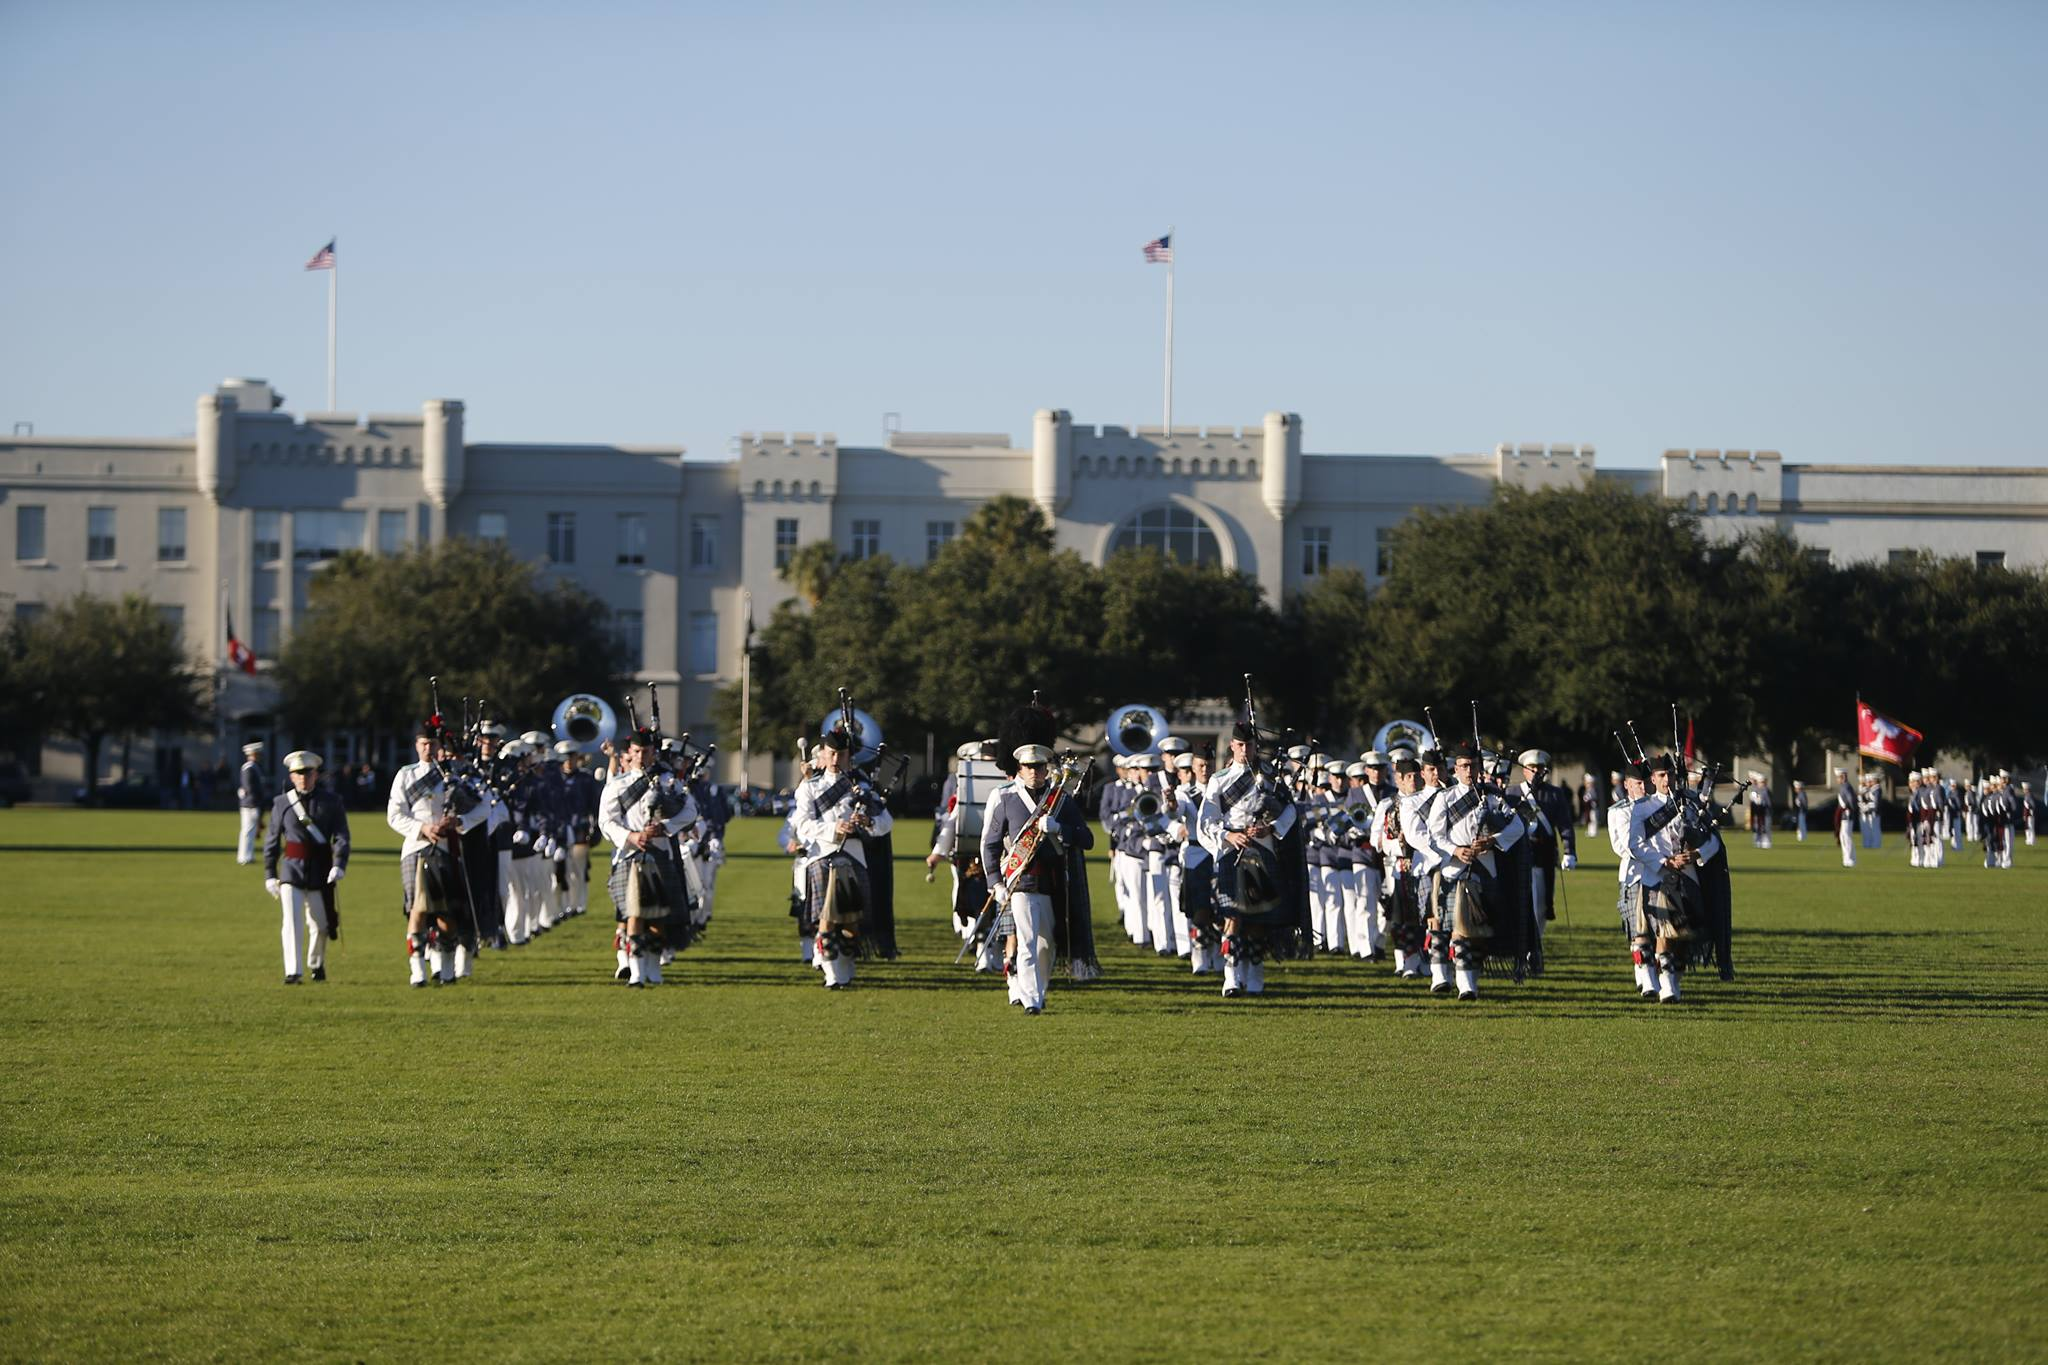 The-Citadel-Regimental-Band-and-Pipes-on-campus-2015-Charleston-SC